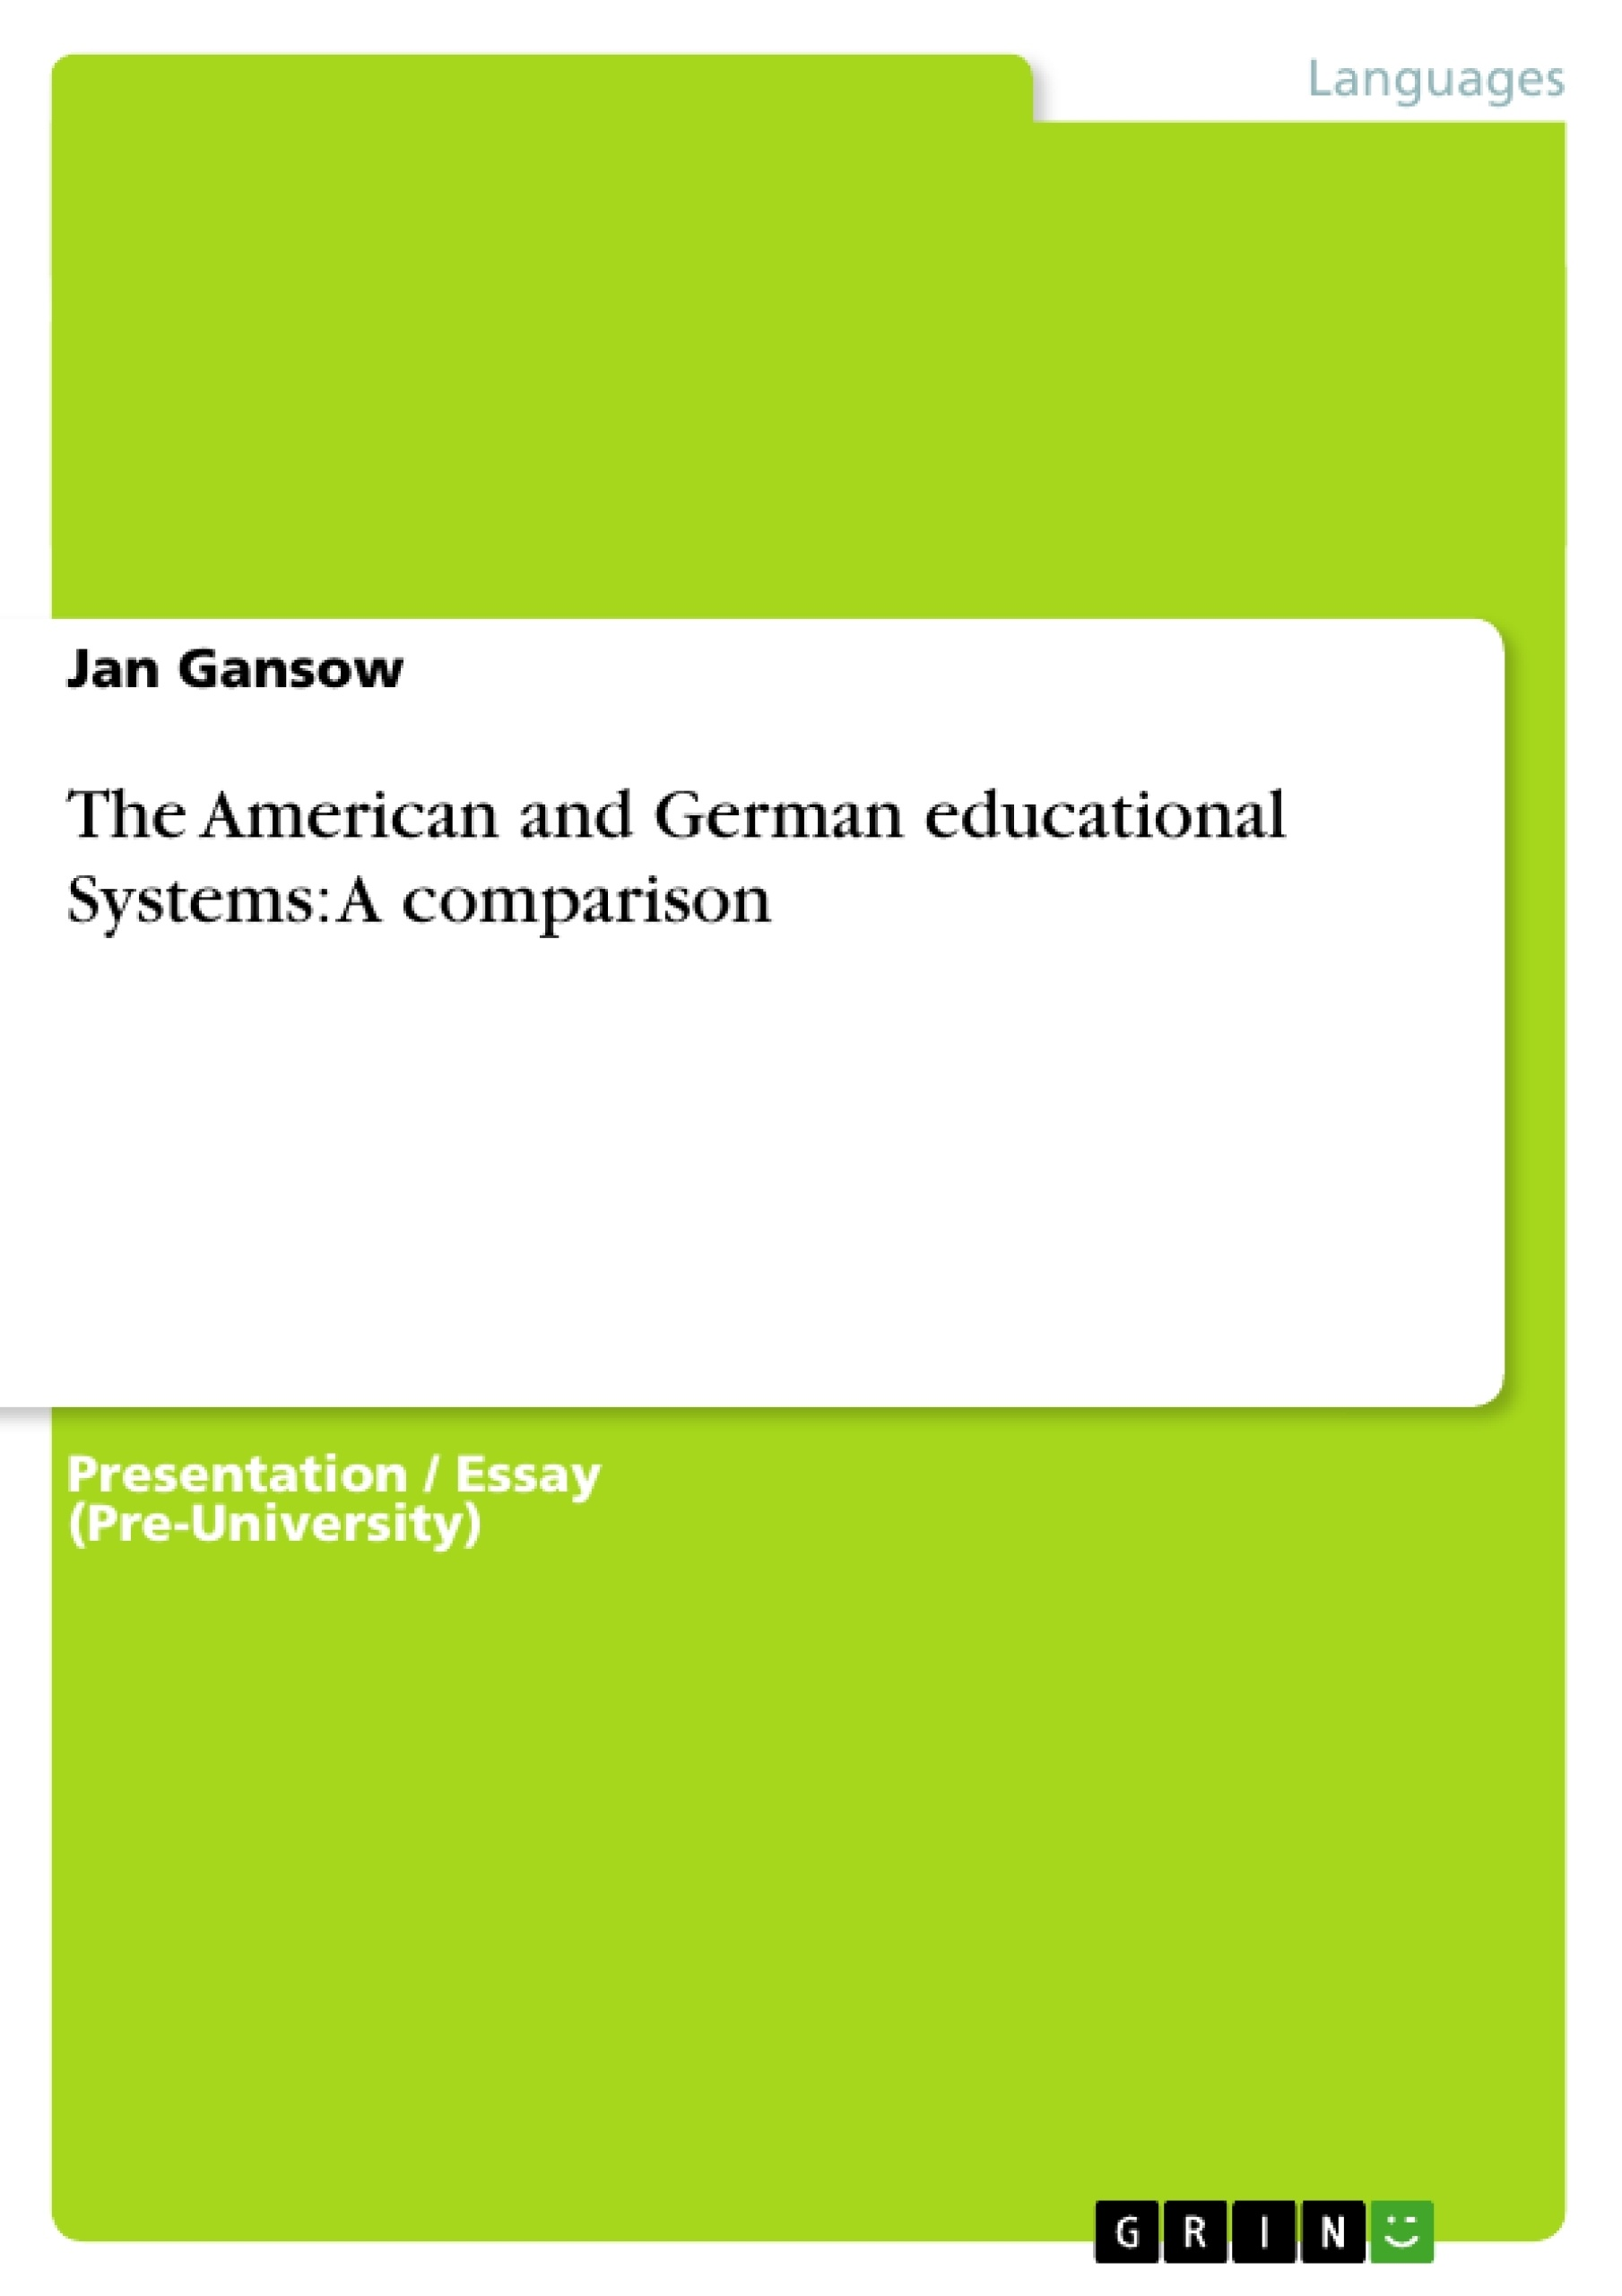 Title: The American and German educational Systems: A comparison